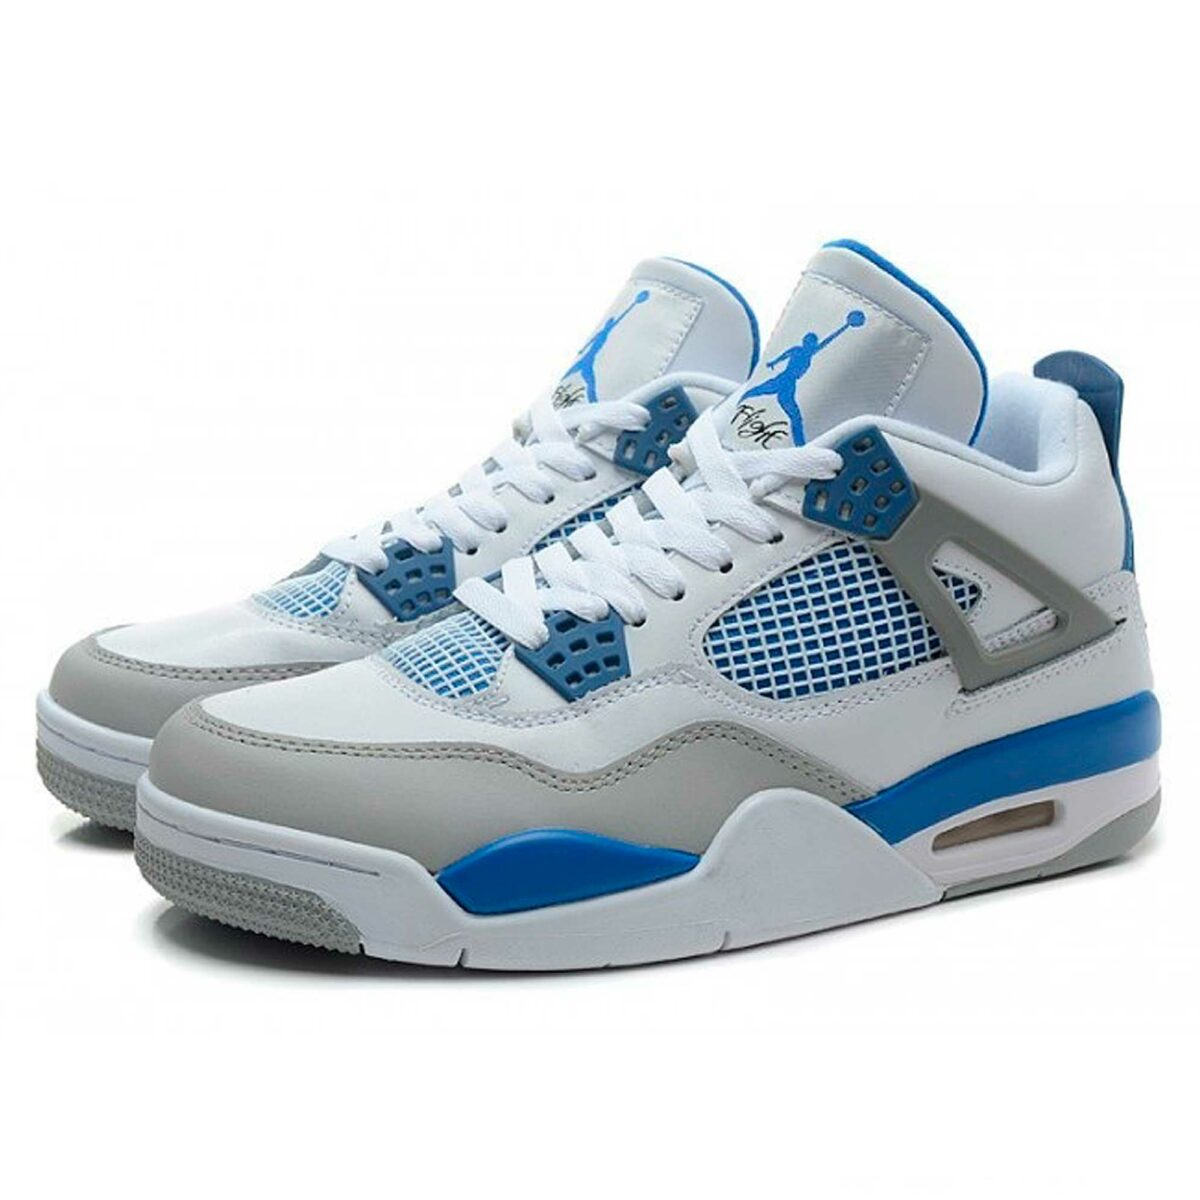 nike air jordan 4 retro white military blue grey 308497-105 интернет магазин